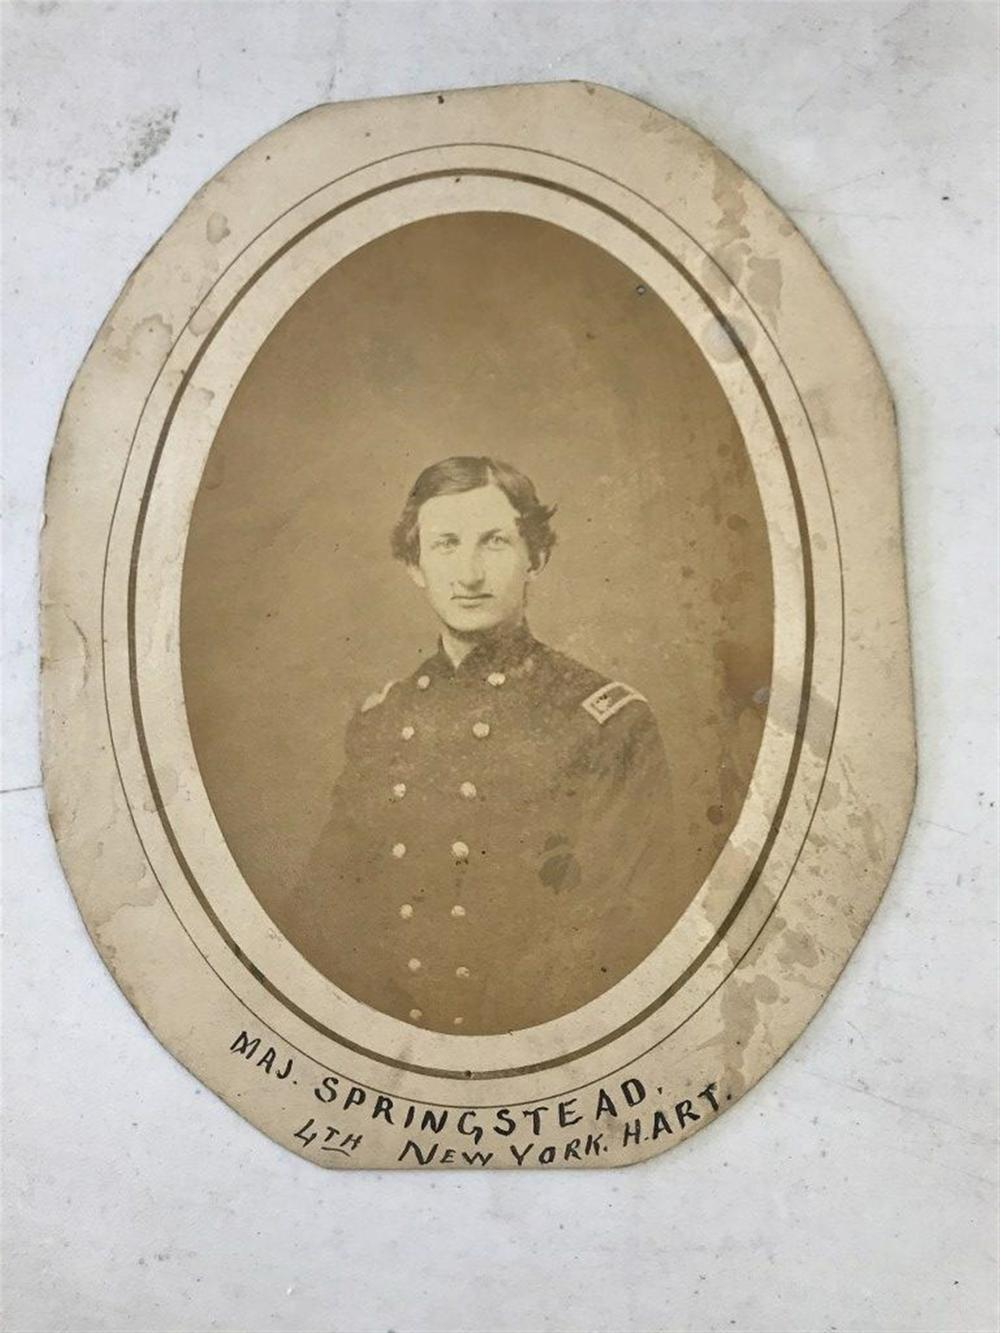 "CIVIL WAR OVAL PORTRAIT OF MAJOR EDWARD A. SPRINGSTEAD, 7TH NY HEAVY ARTILLERY. HE WAS WOUNDED IN ACTION ON JUNE 16, 1864 AT PETERSBURG, VA. AND KILLED IN ACTION ON AUG. 25, 184 AT REAM'S STATION, VA. PHOTO IS 7 1/4"" X 5 1/4"" ON 9 1/2"" X 7 3/4"""